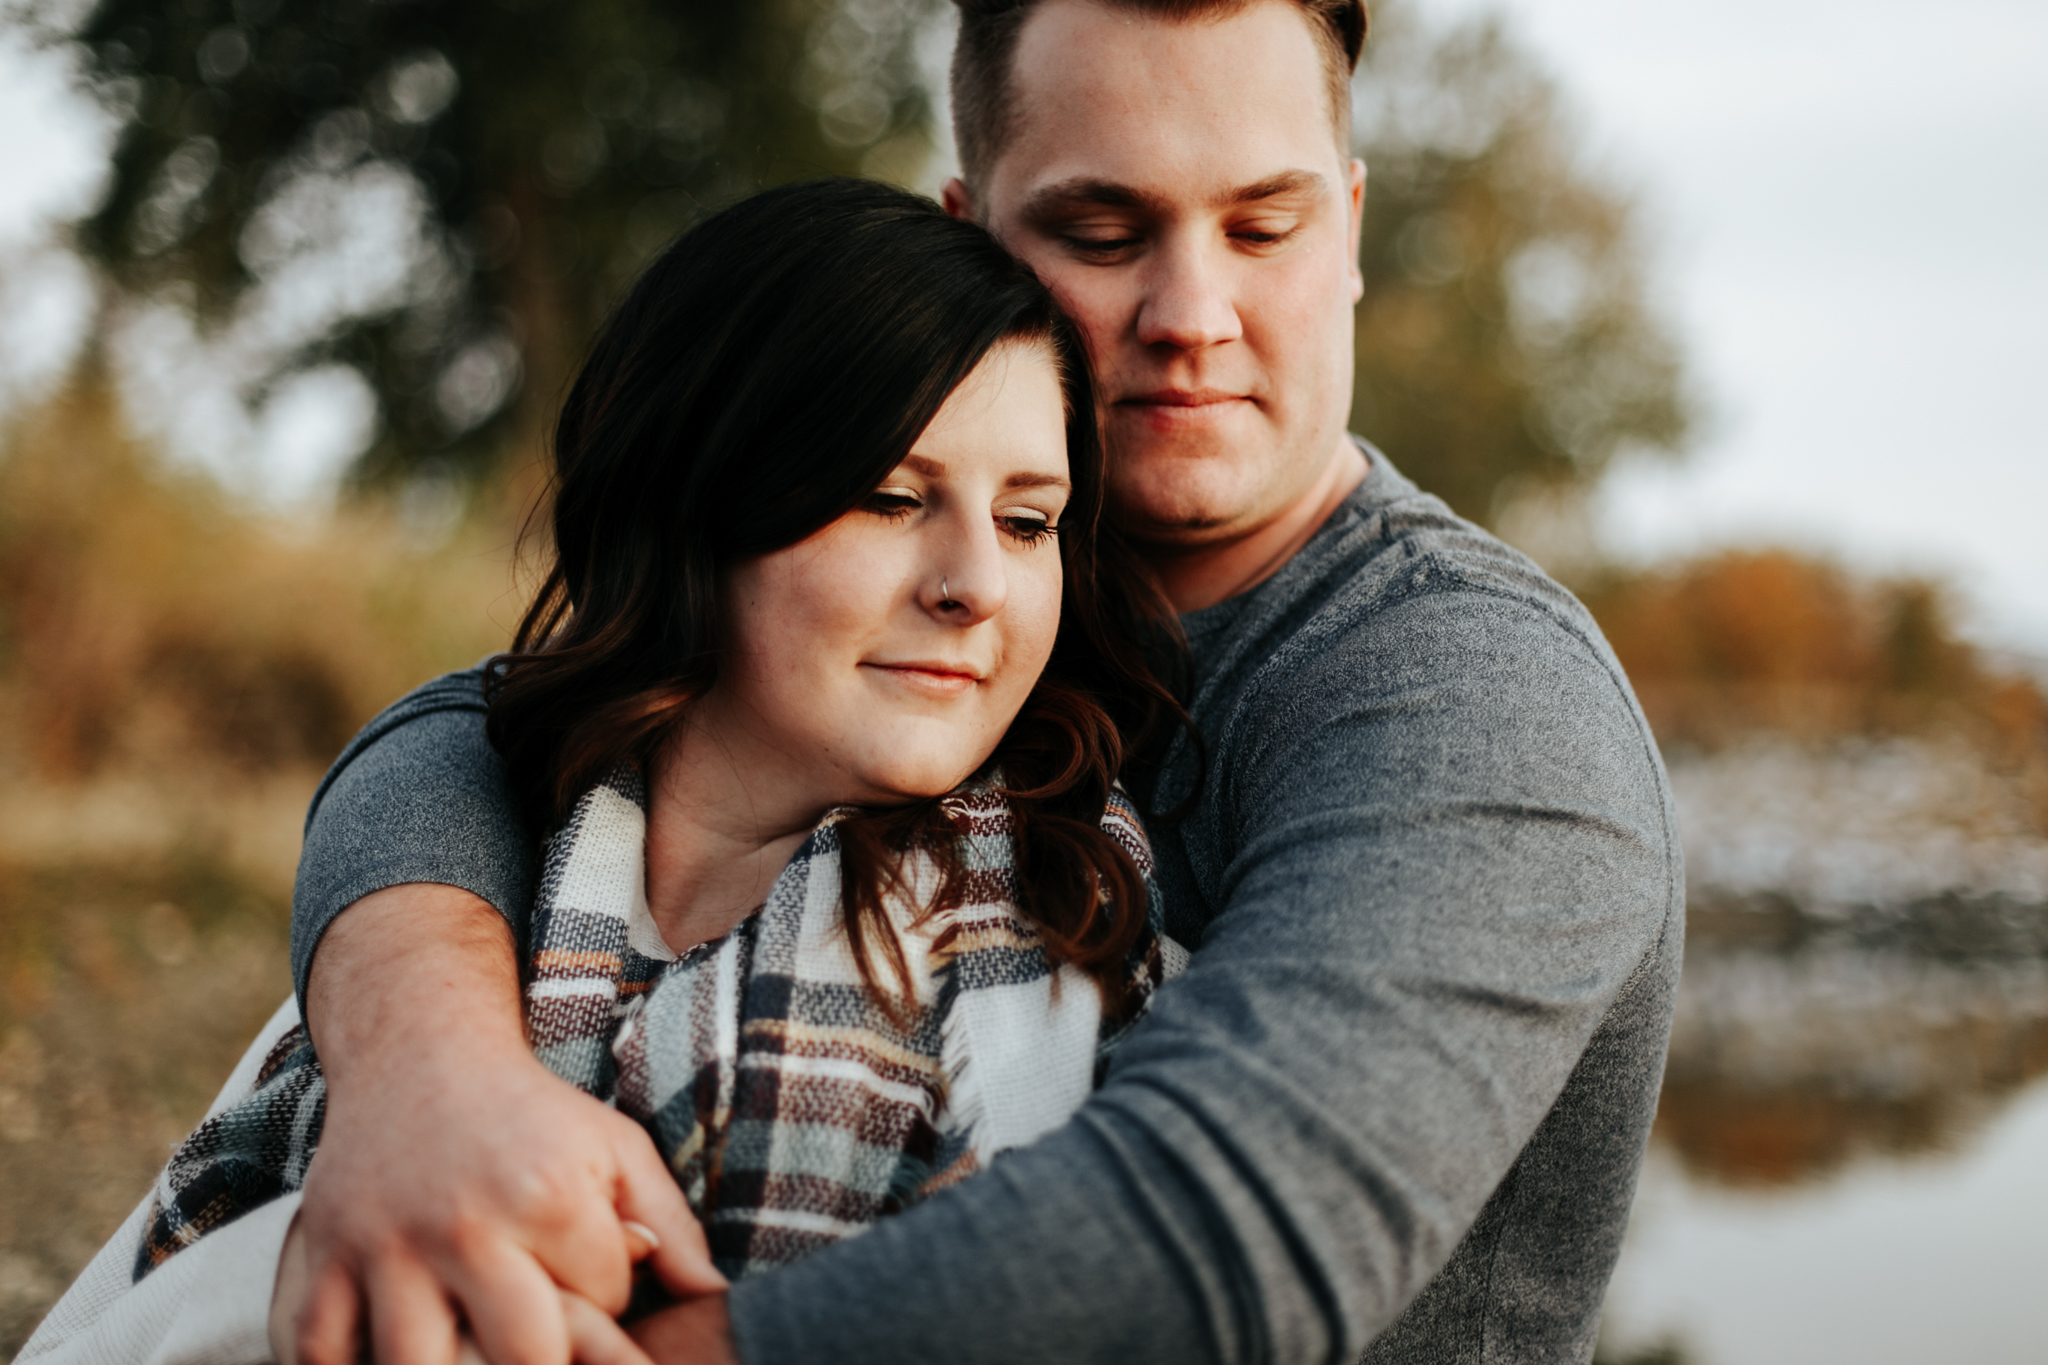 lethbridge-photographer-love-and-be-loved-photography-christy-bryan-fall-autumn-engagement-photo-image-picture-35.jpg